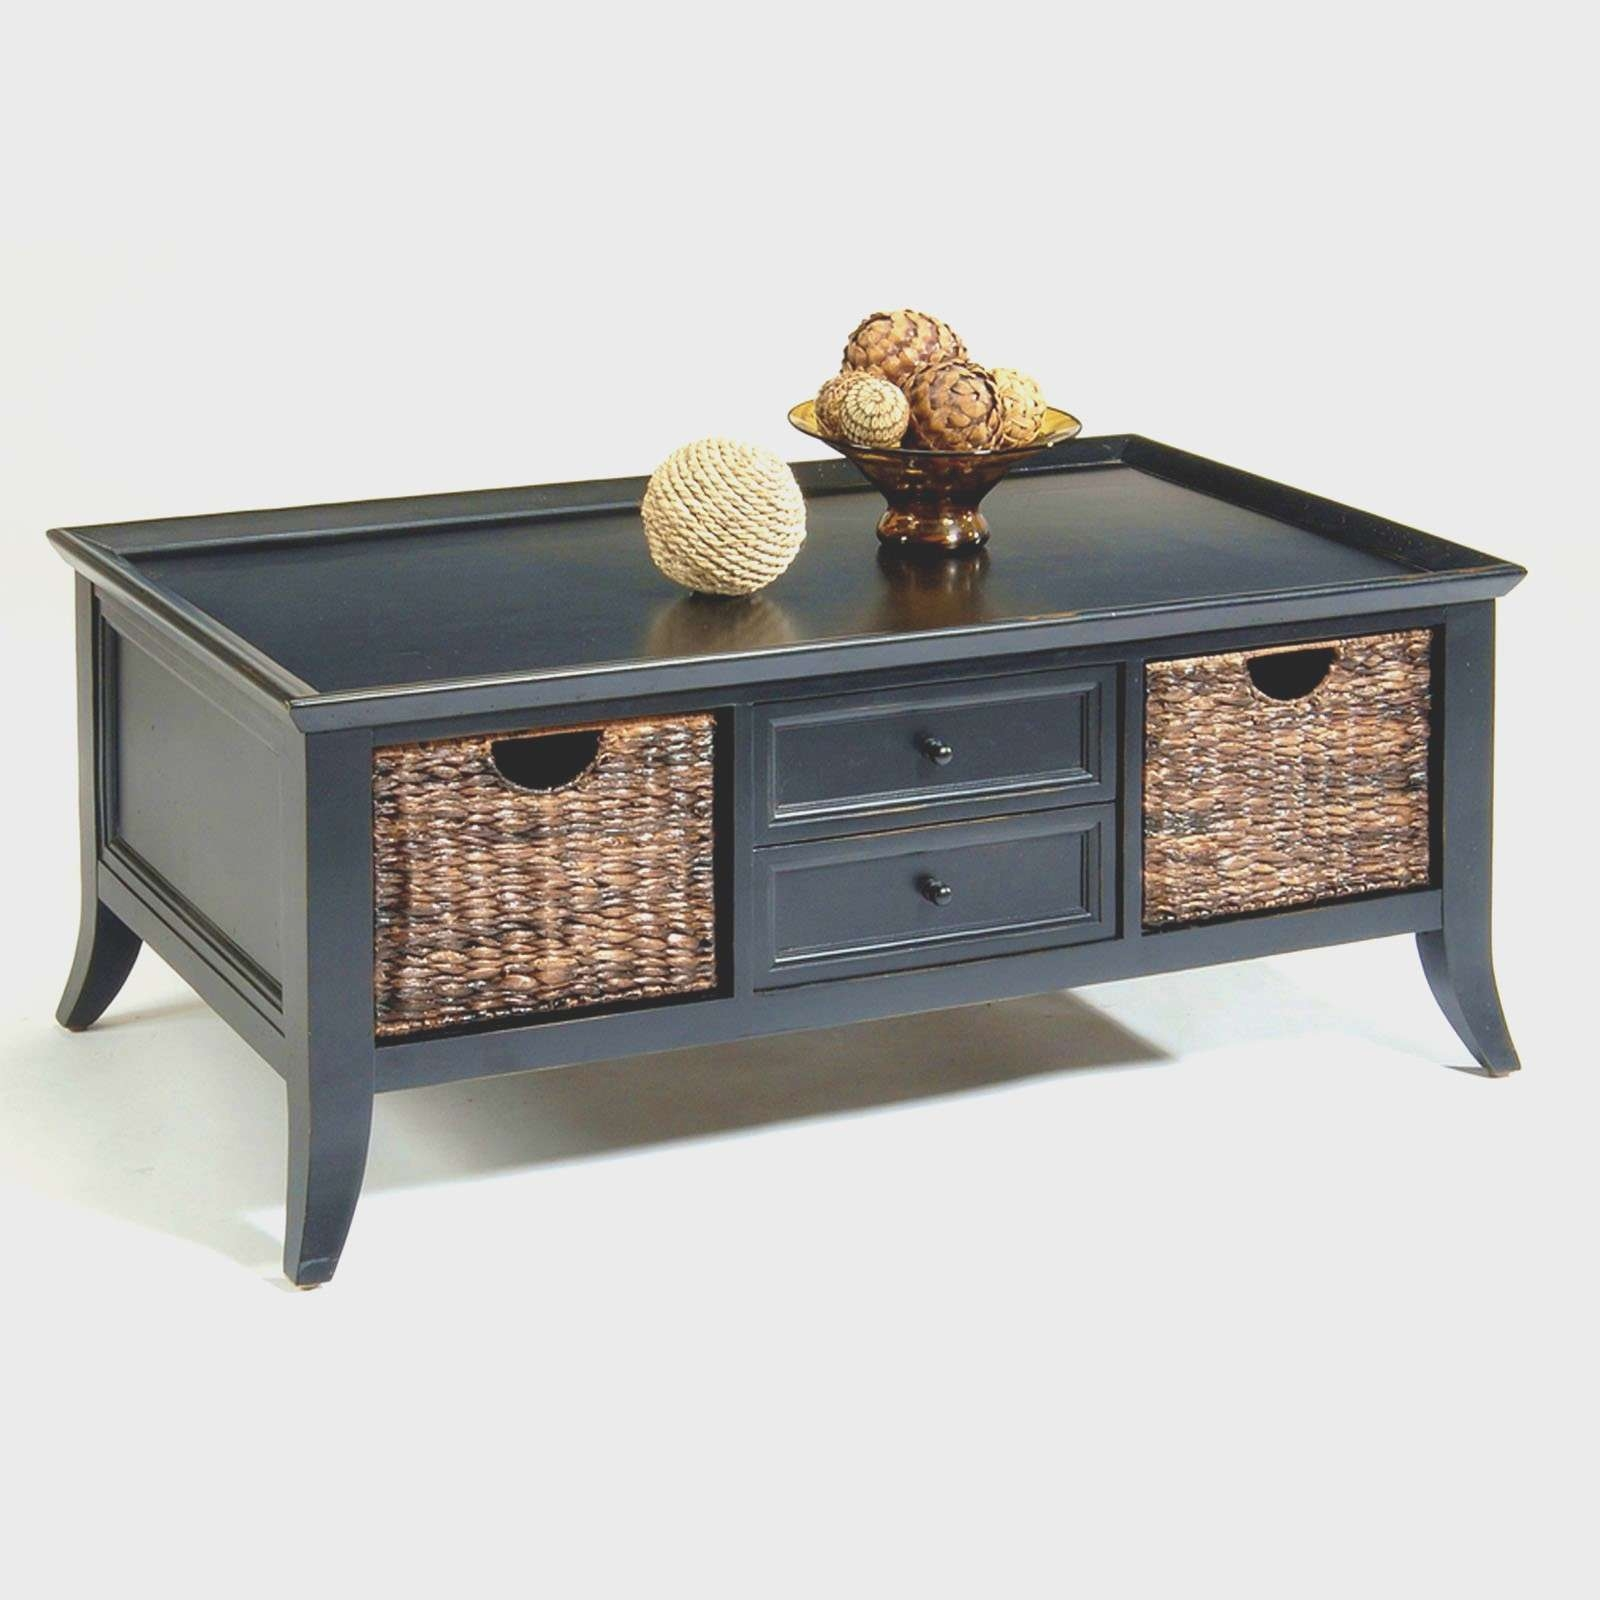 Most Up To Date Coffee Tables With Basket Storage Underneath Inside Under Coffee Table Storage Under Coffee Table Storage Baskets (View 14 of 20)